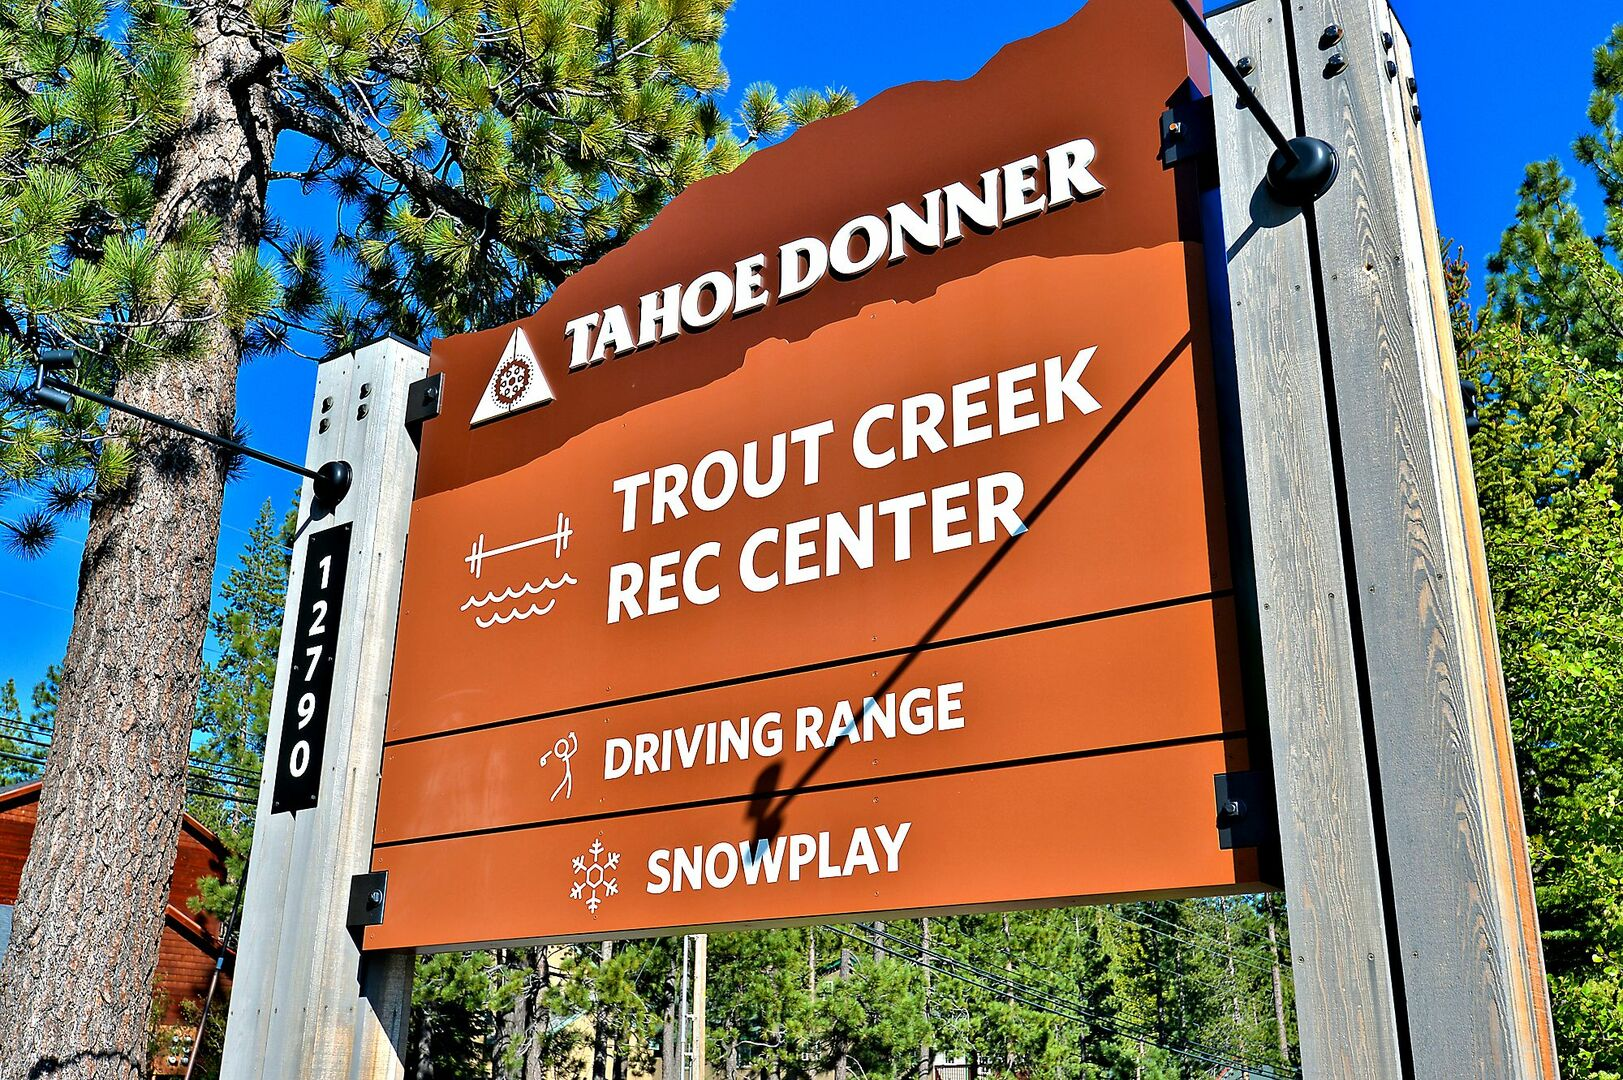 Sign for Trout Creek Rec Center